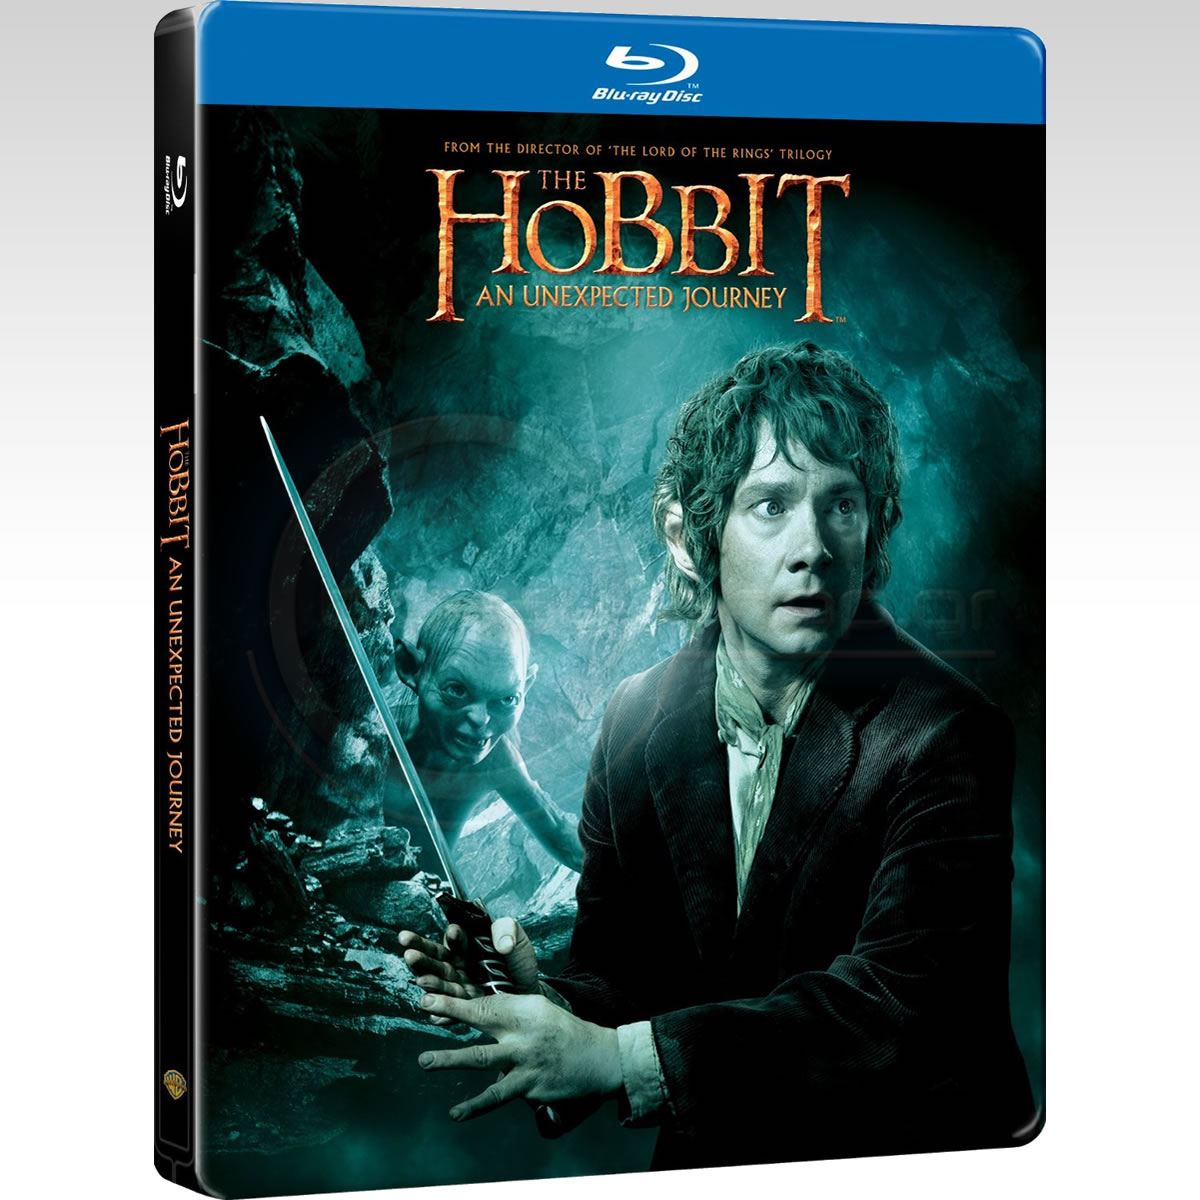 THE HOBBIT: AN UNEXPECTED JOURNEY - THE HOBBIT: ��� ���������� ������ Limited Collector's Edition Steelbook ������������ [��������� �� ���������� ����������] (2 BLU-RAYs)